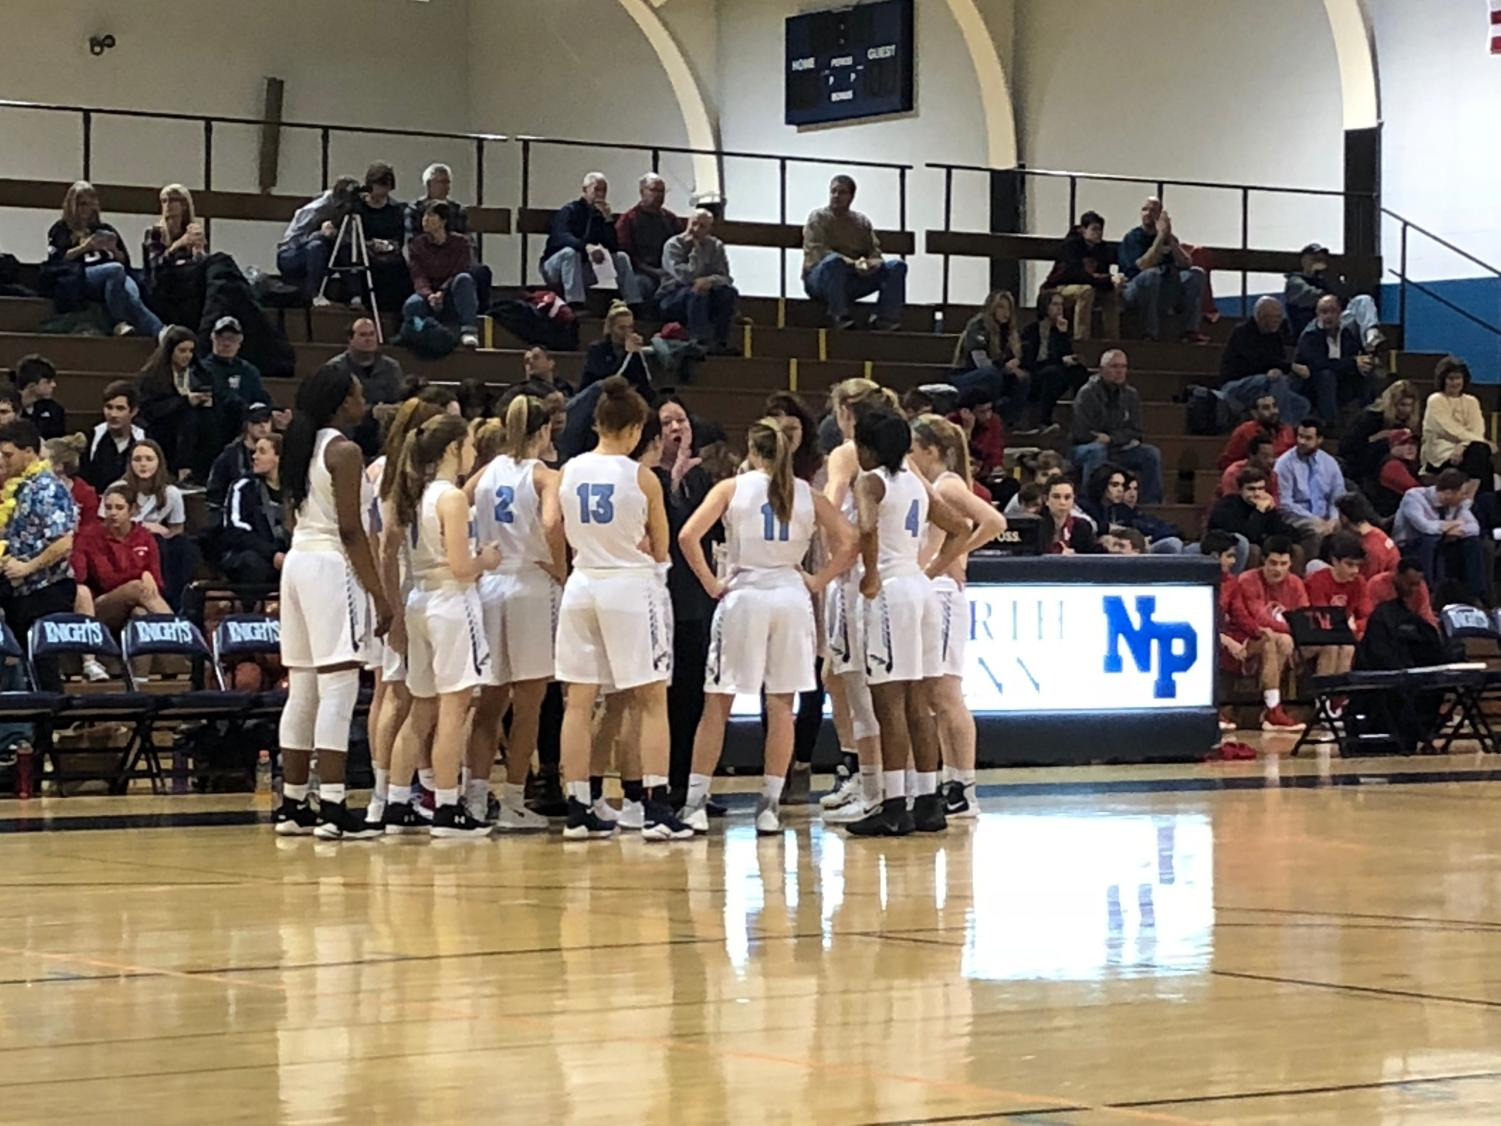 BASKETBALL- After a promising first quarter, the North Penn Knights fell to the Souderton Indians on Friday, February 2nd.